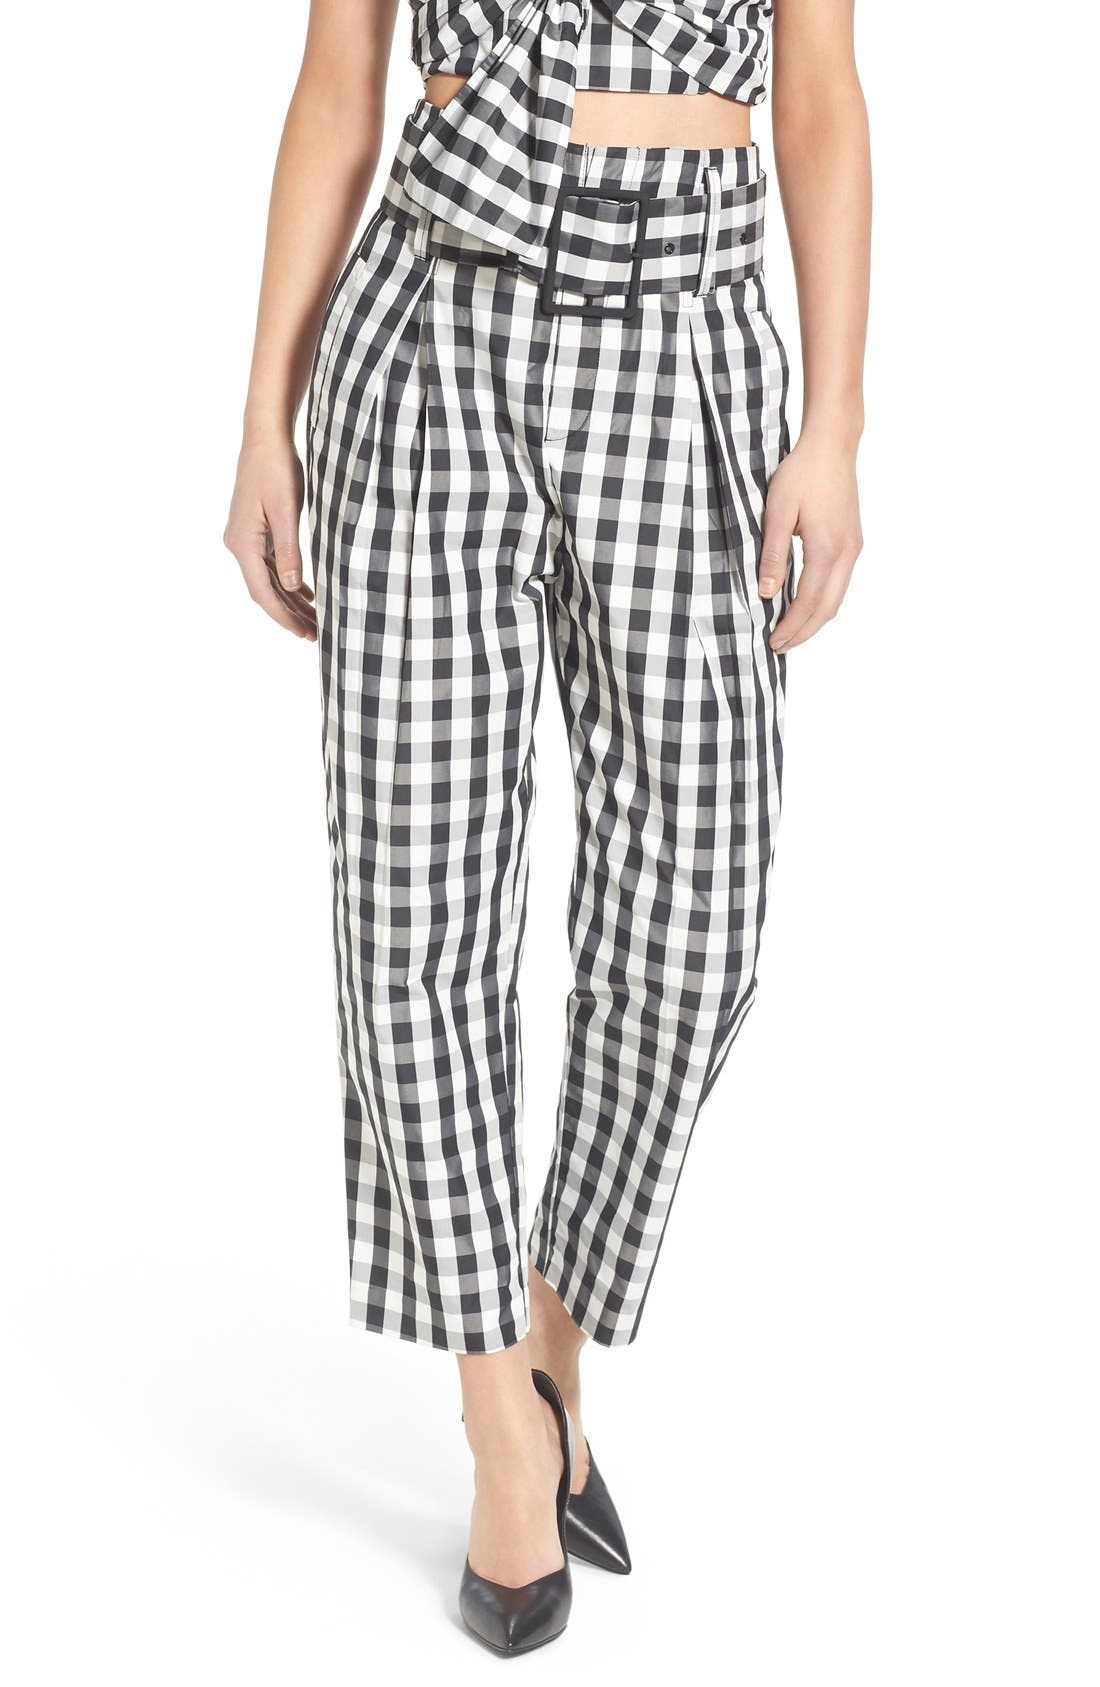 KENDALL + KYLIE Gingham High Rise Crop Pants, Main, color, 003